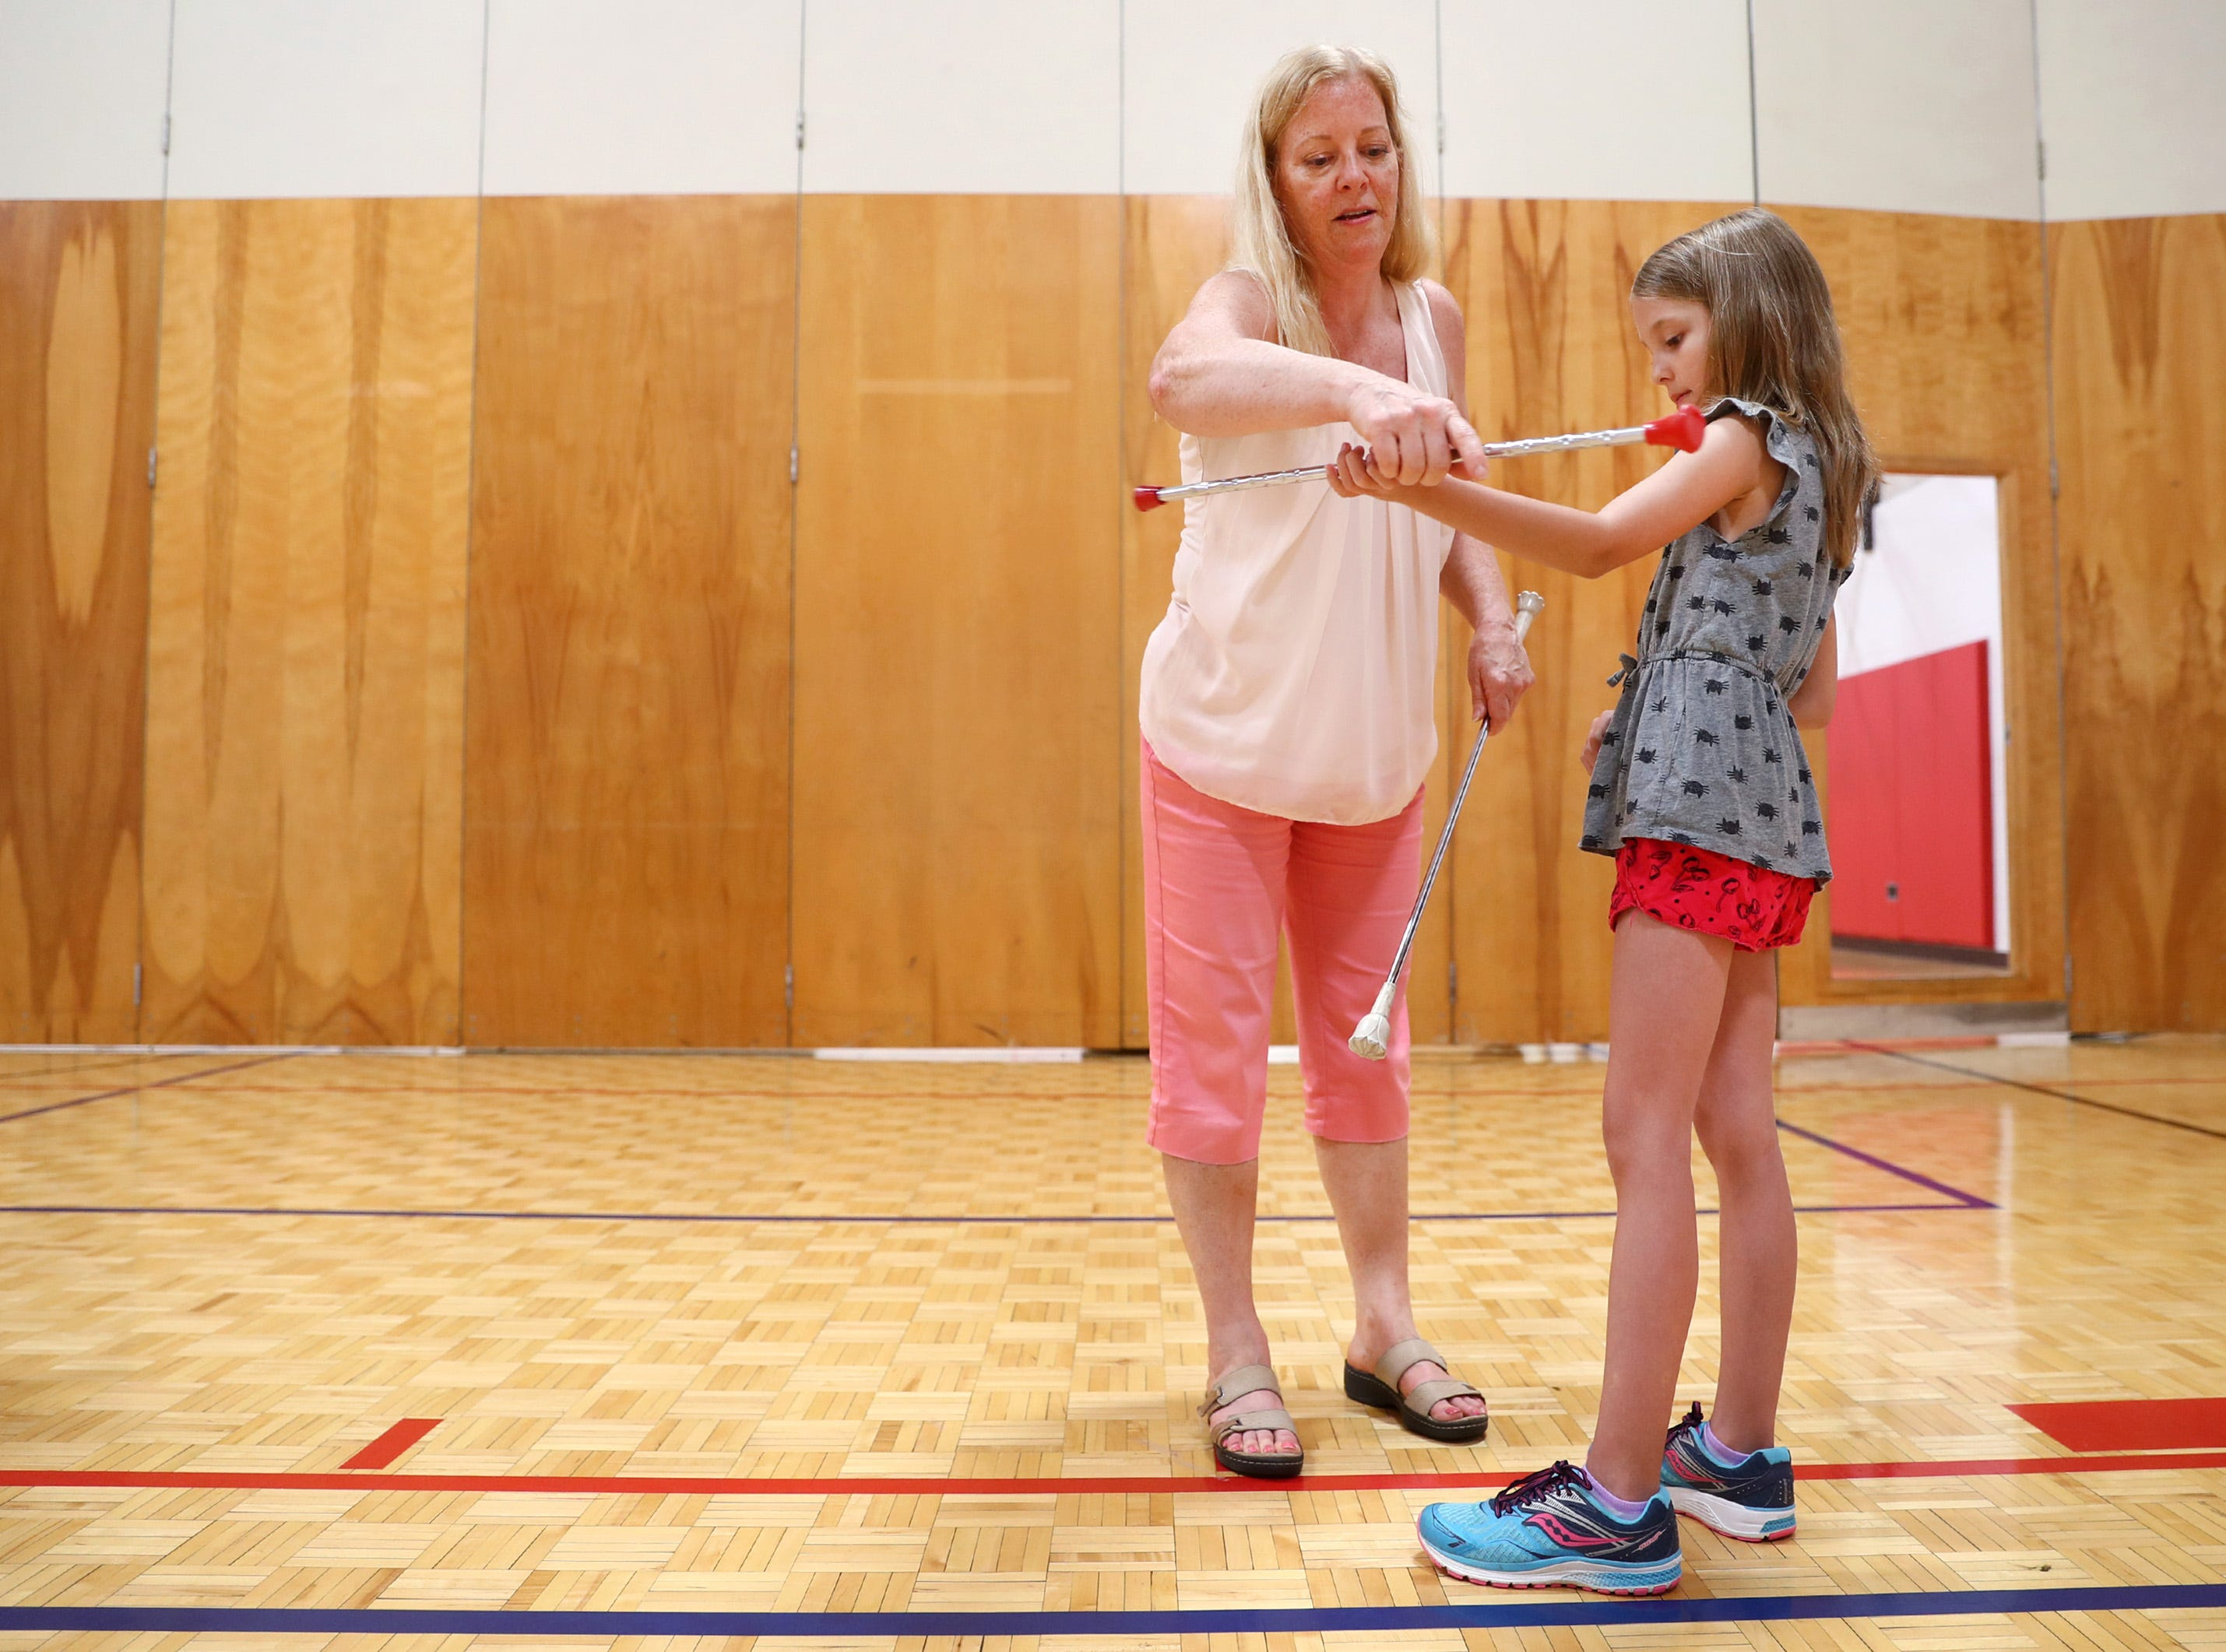 Maripat Franke, a special education teacher at Neenah High School currently enrolled in the Residency In Teacher Education 2.0 program at CESA 6, works with Cecelia Preman, 8, while teaching a baton twirling class at the Neenah/Menasha YMCA Monday, Sept. 17, 2018, in Neenah, Wis. Franke teaches the class Monday nights after school.